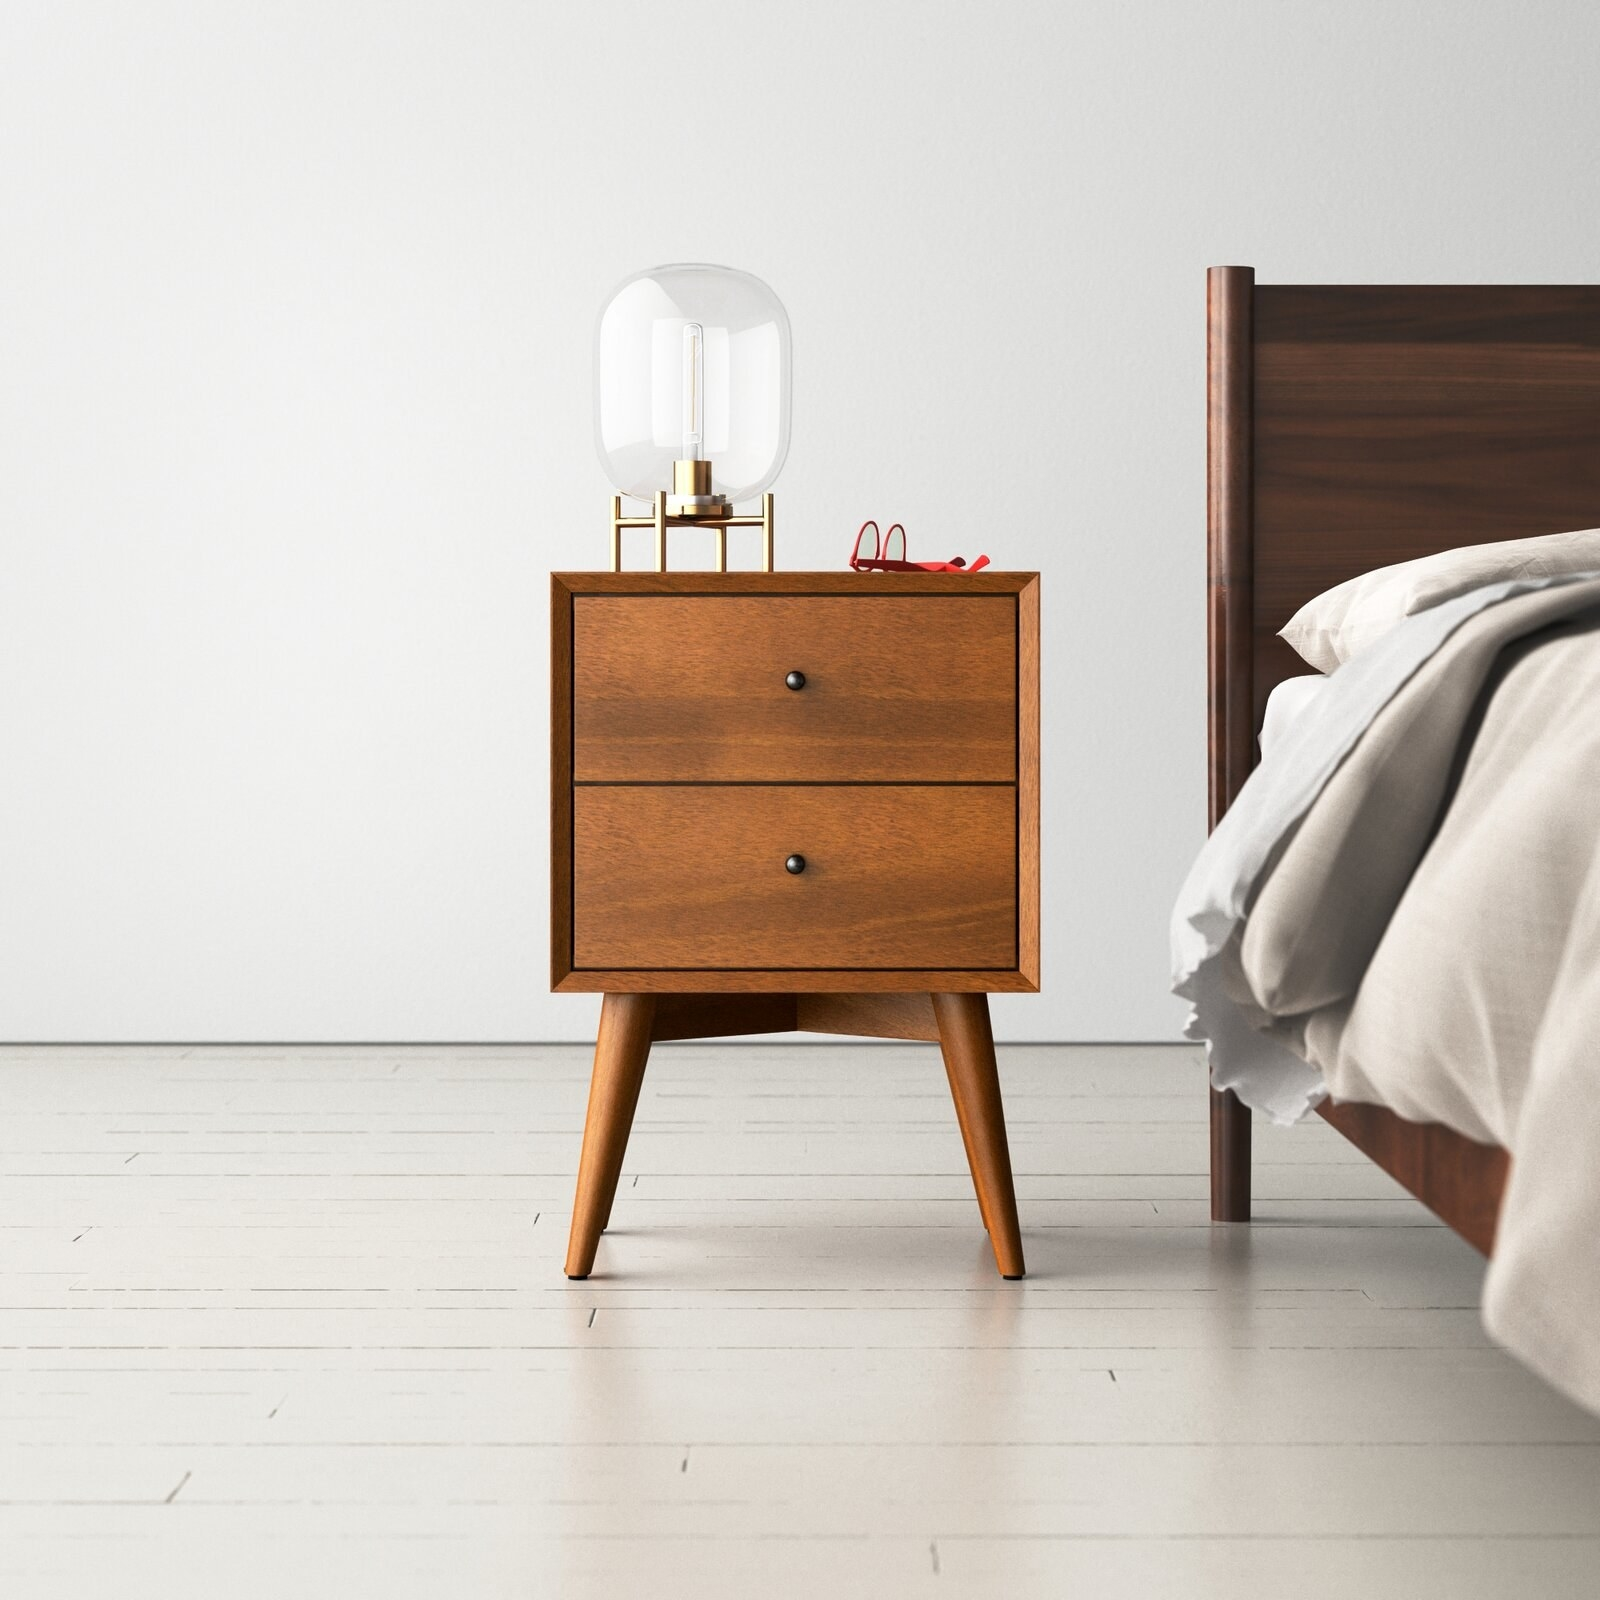 The nightstand, which has two drawers with small knob pulls and four splayed legs